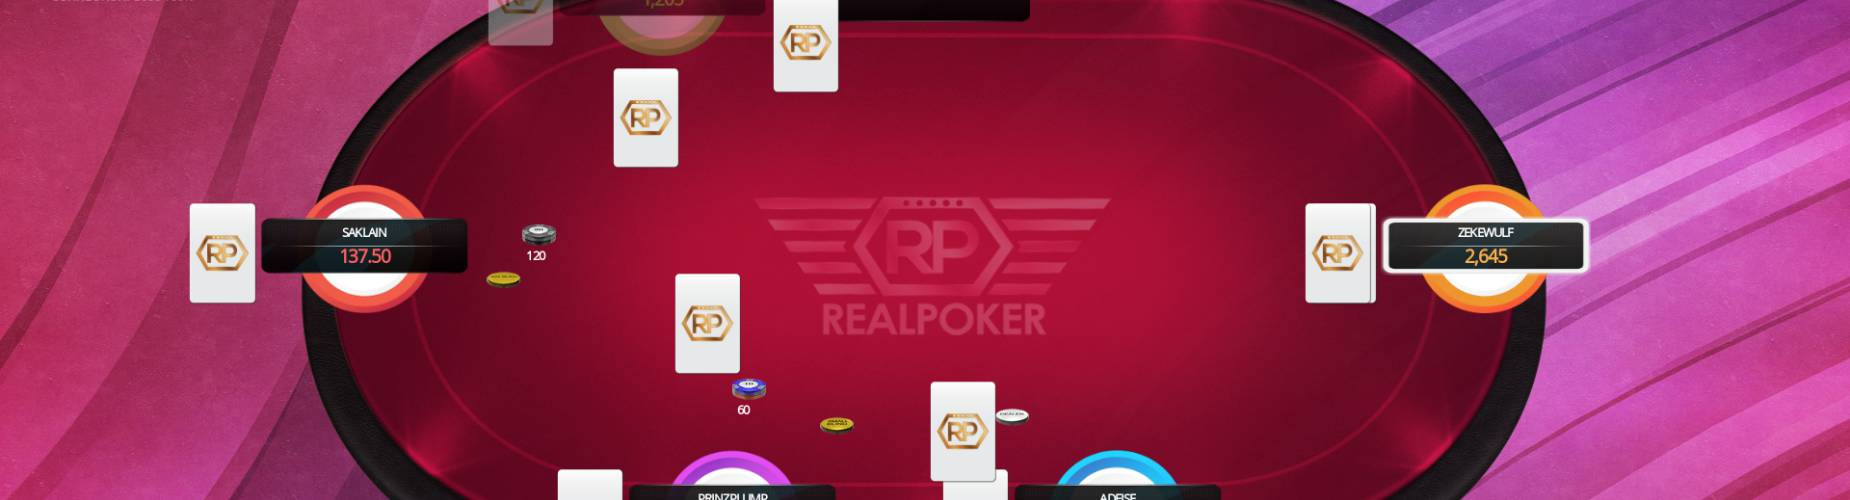 How Do Blinds Work in Online Poker?